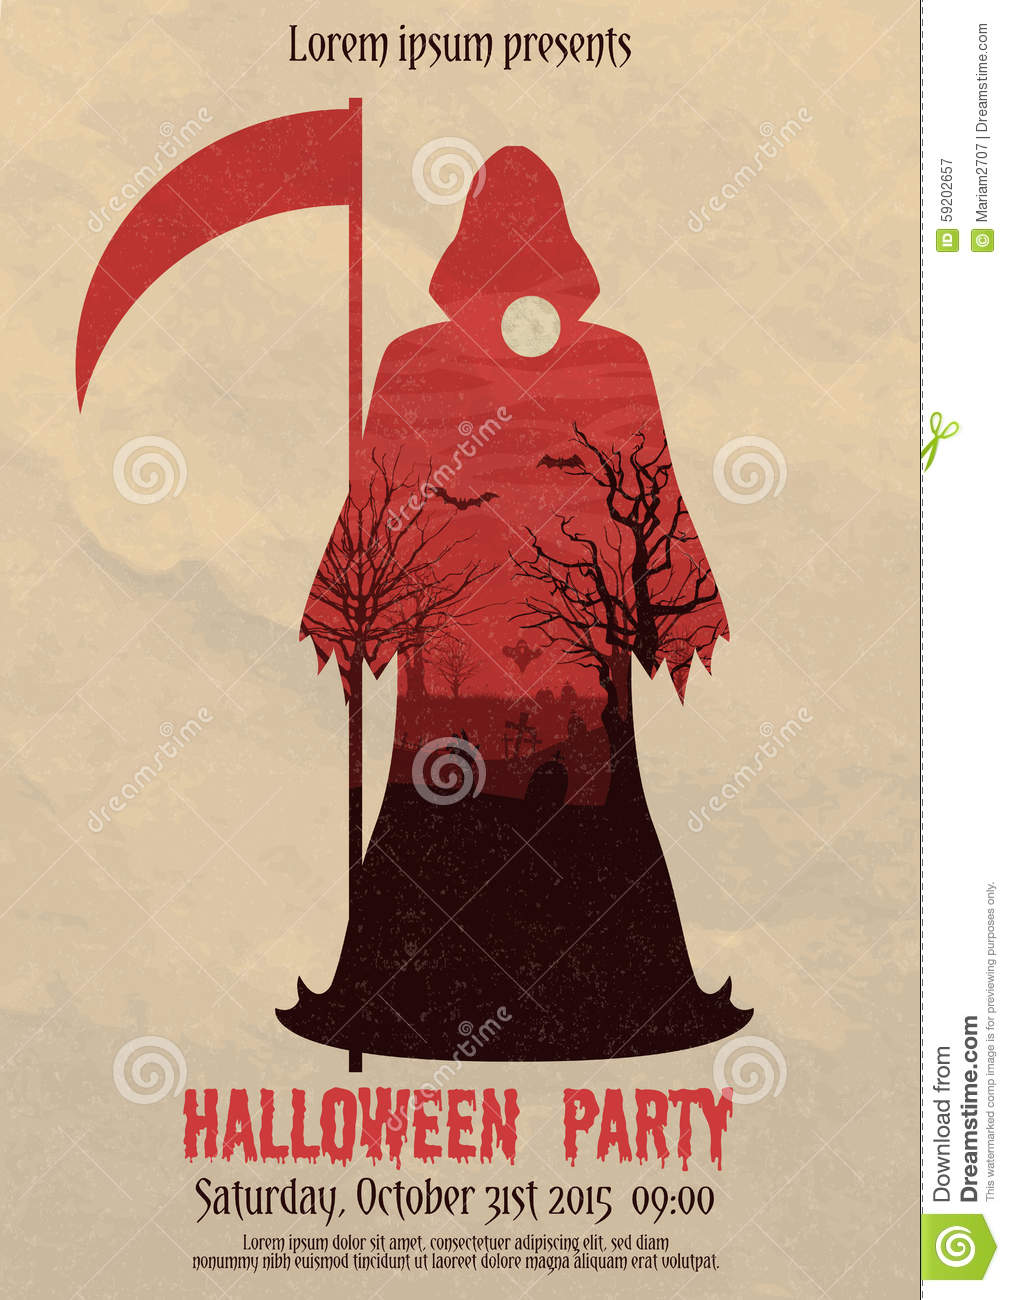 Vintage Halloween Party Death Poster Stock Vector - Image: 59202657